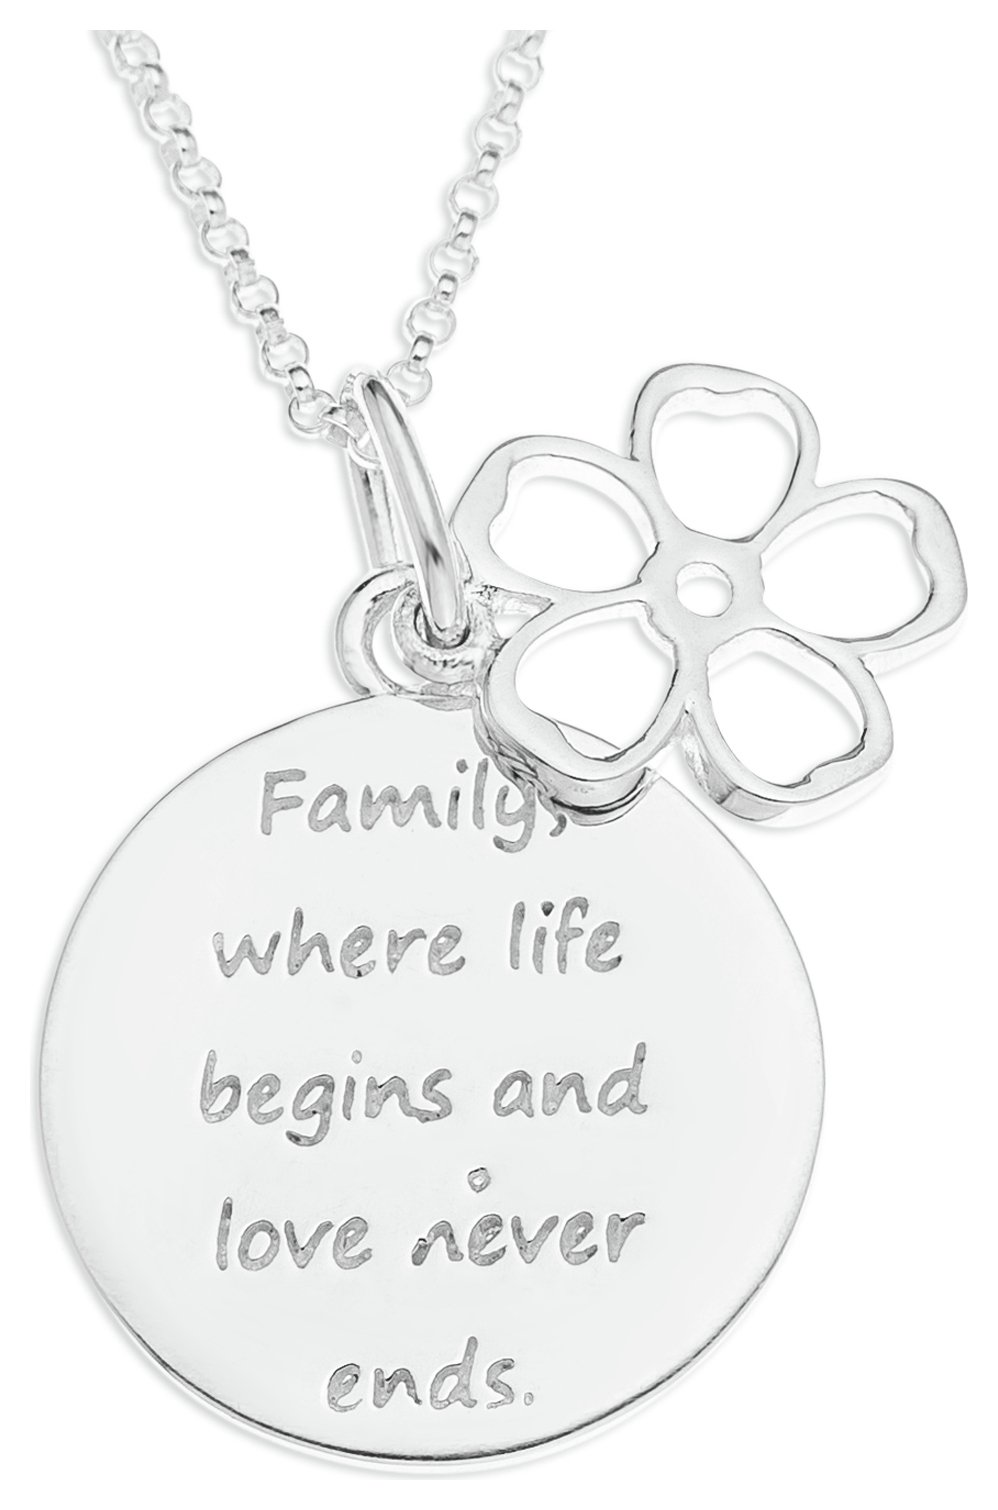 Image of From the Heart - Silver Family Message Pendant.